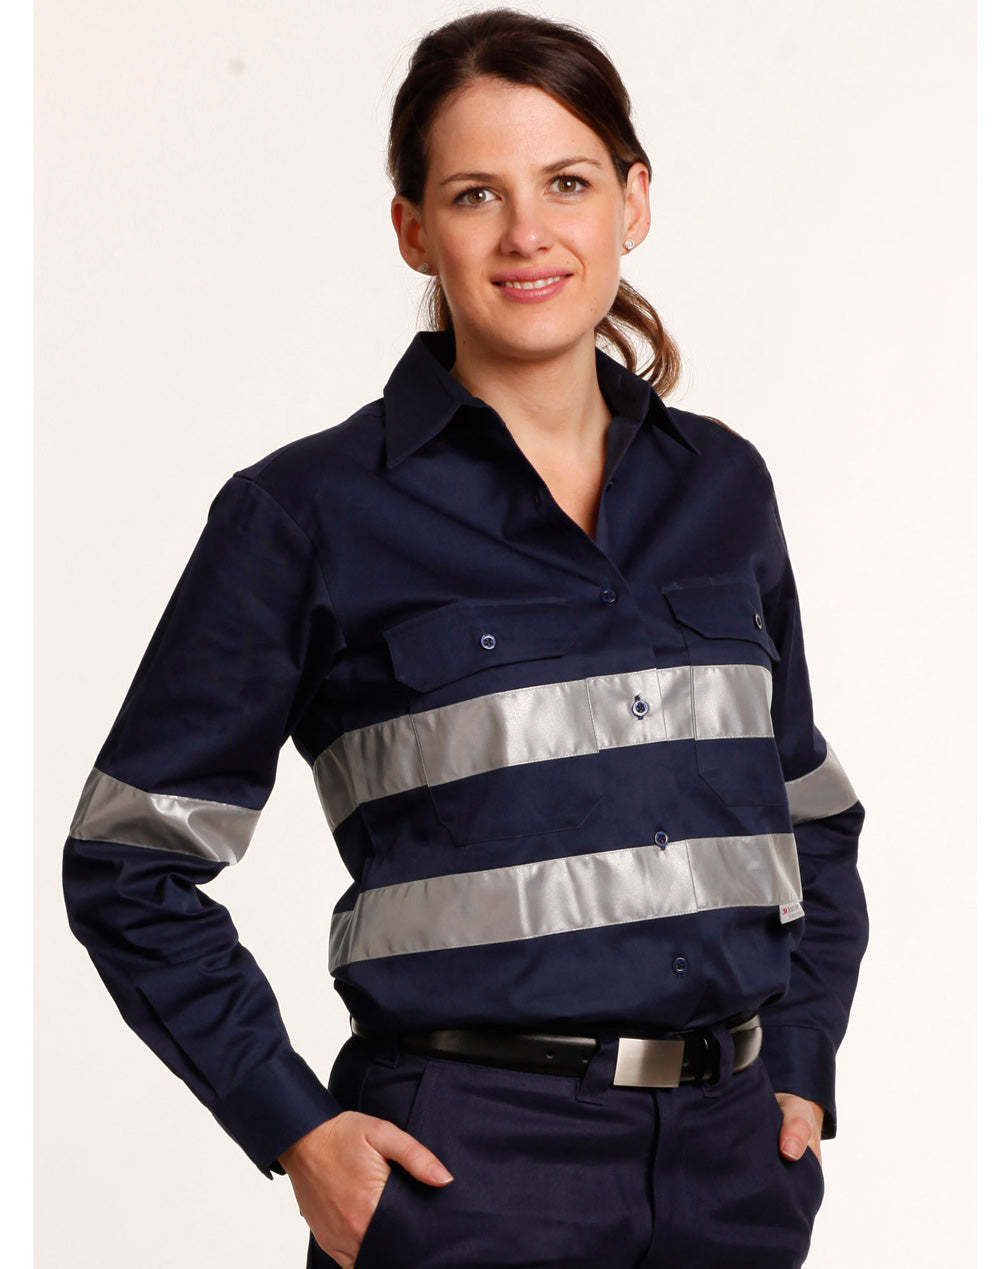 [WT08HV] Ladies HiVis Cotton Drill Long Sleeves Work Shirt with 3M Reflective Taps